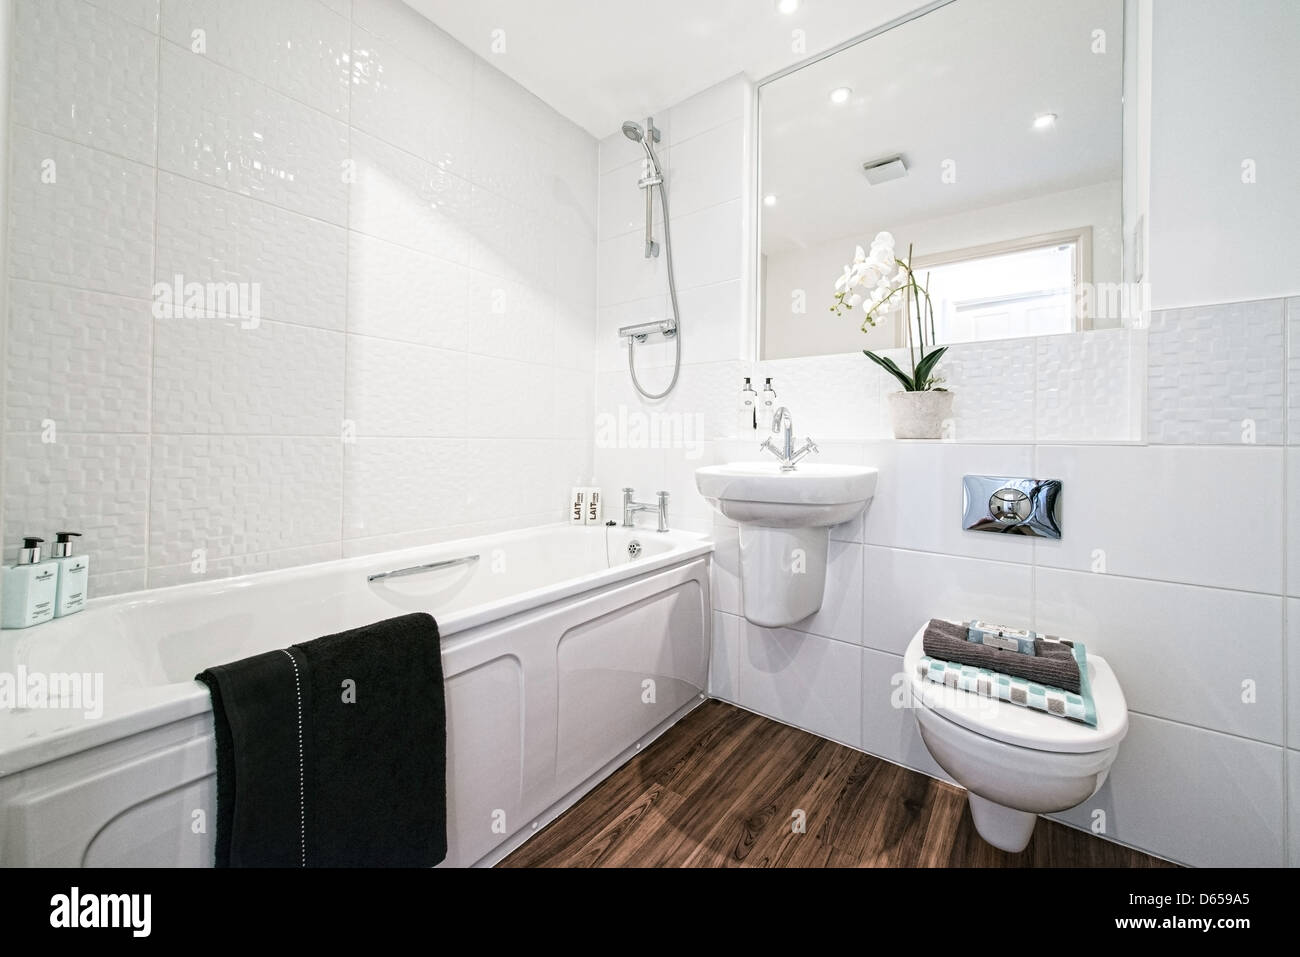 A typical modern bathroom - Stock Image